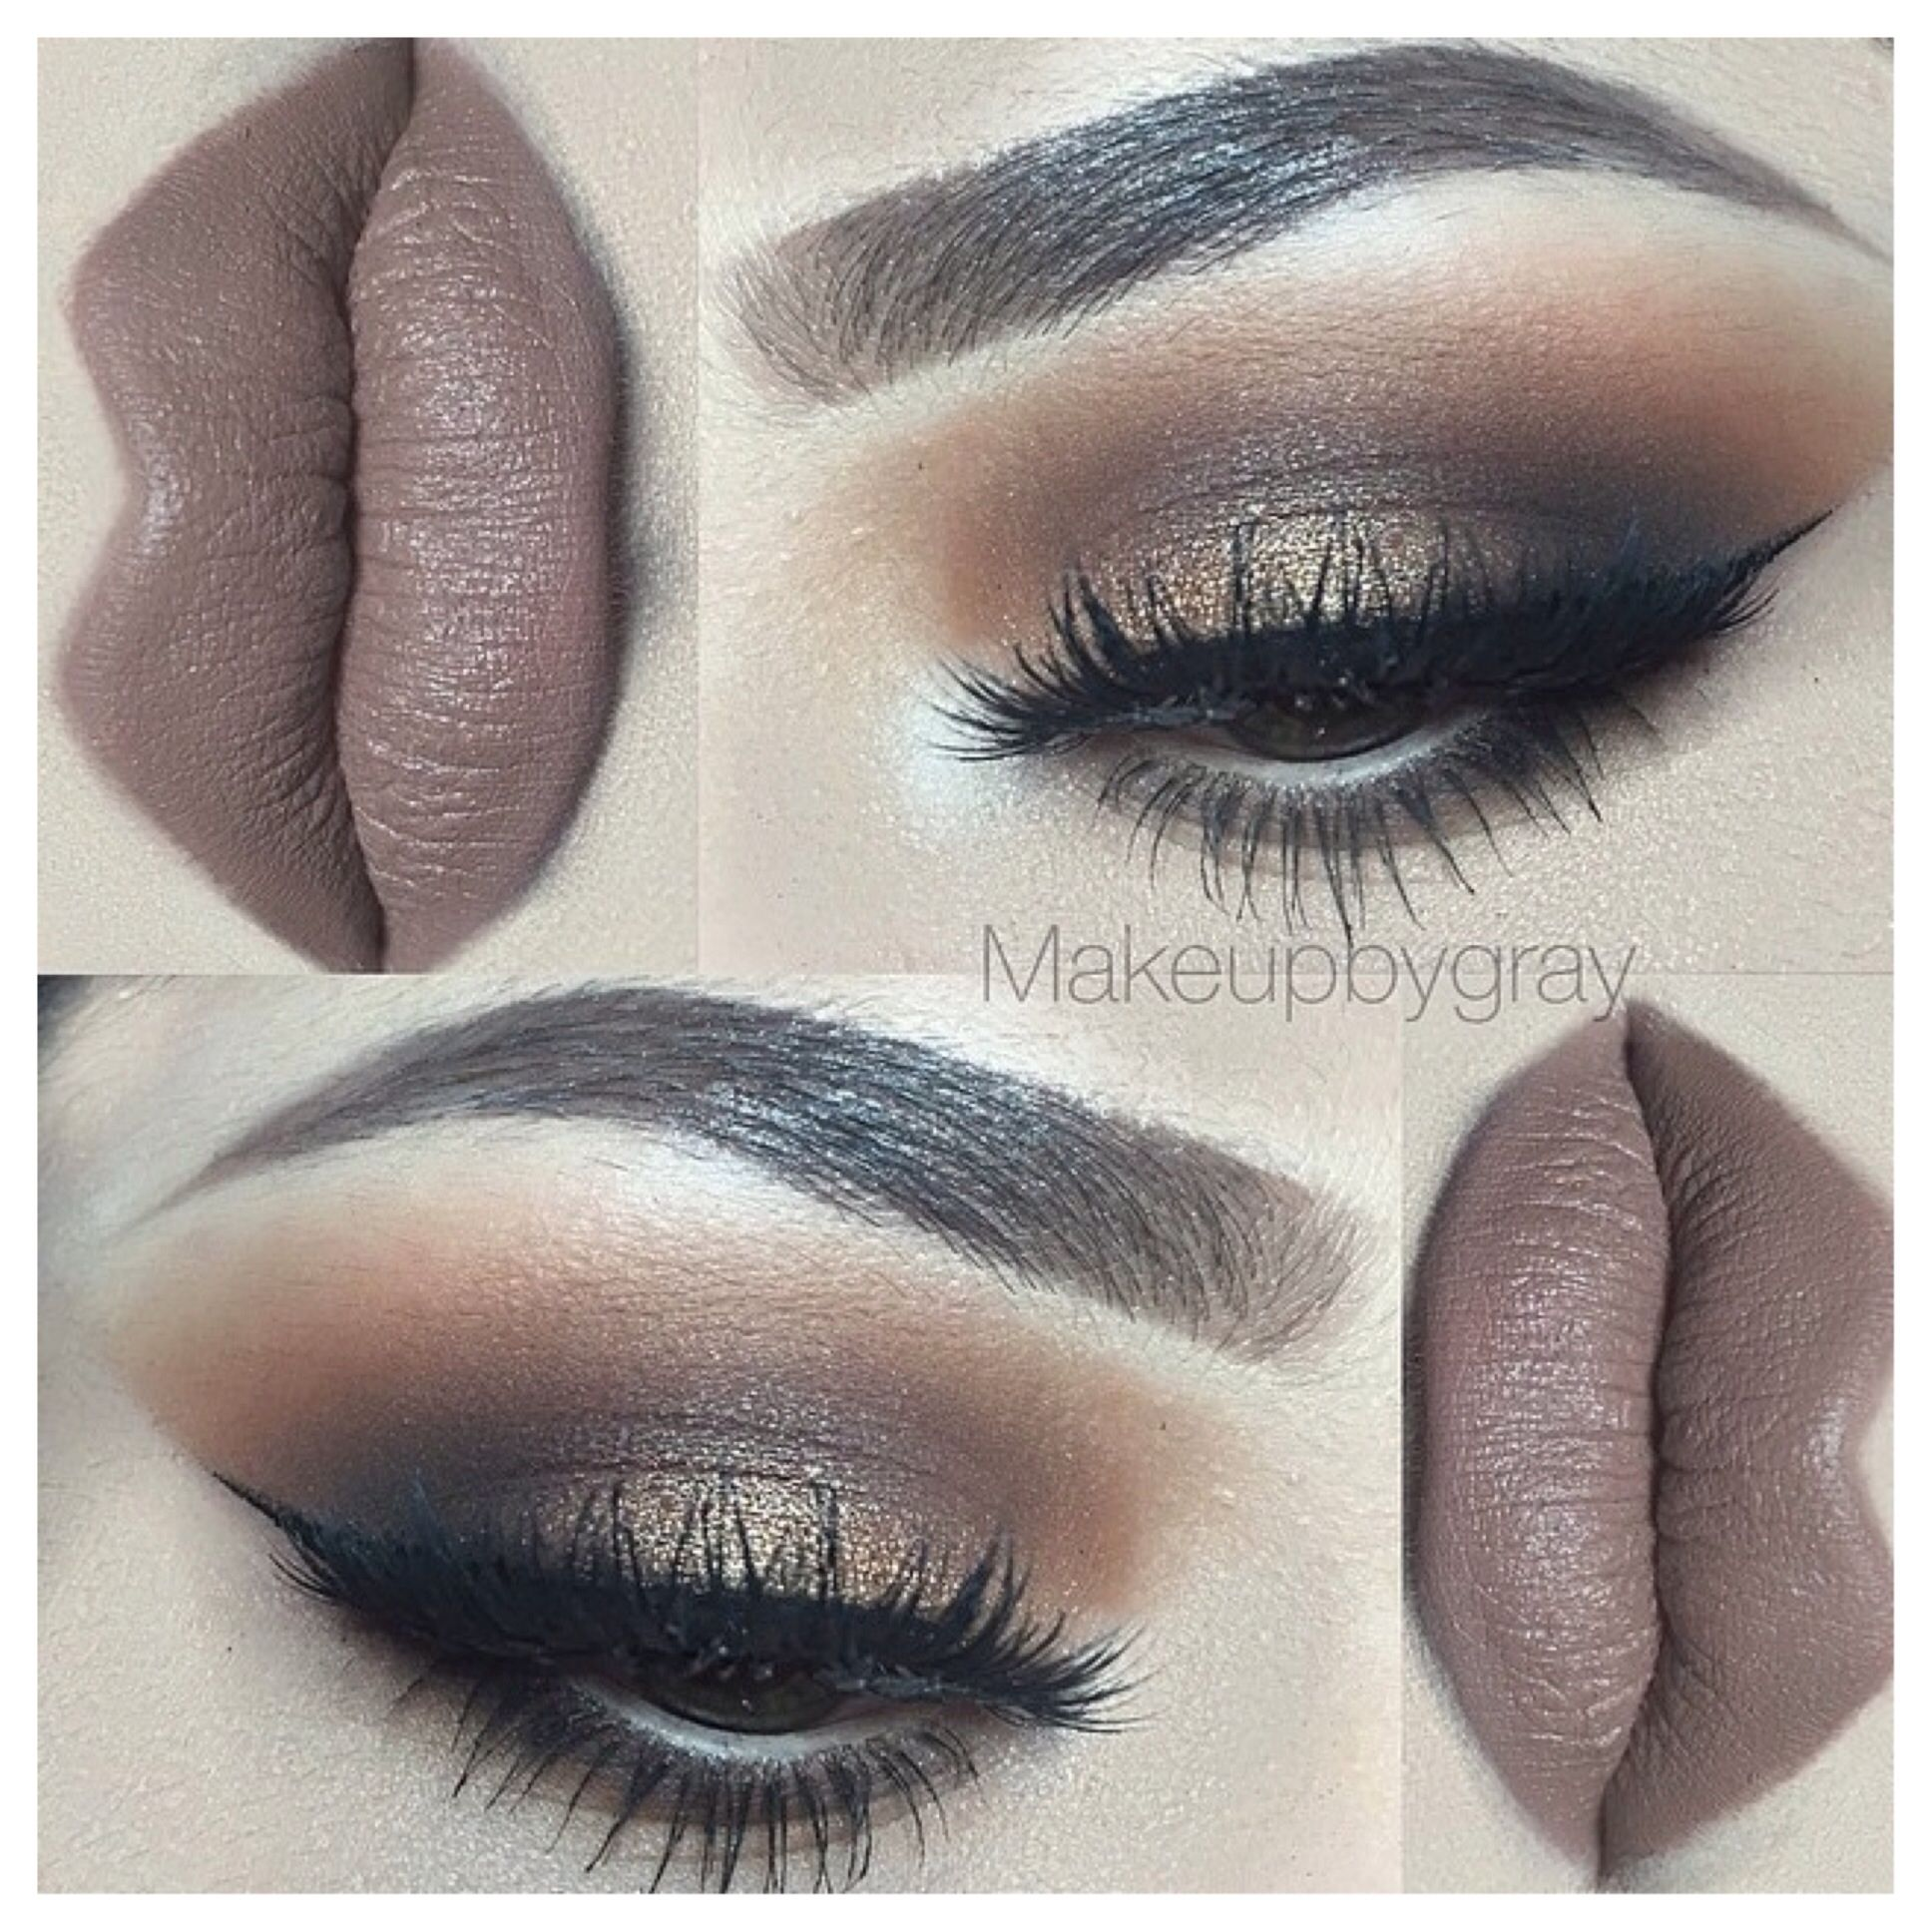 MAC COSMETICS Styled In Sepia Matte. Soft neutral brown